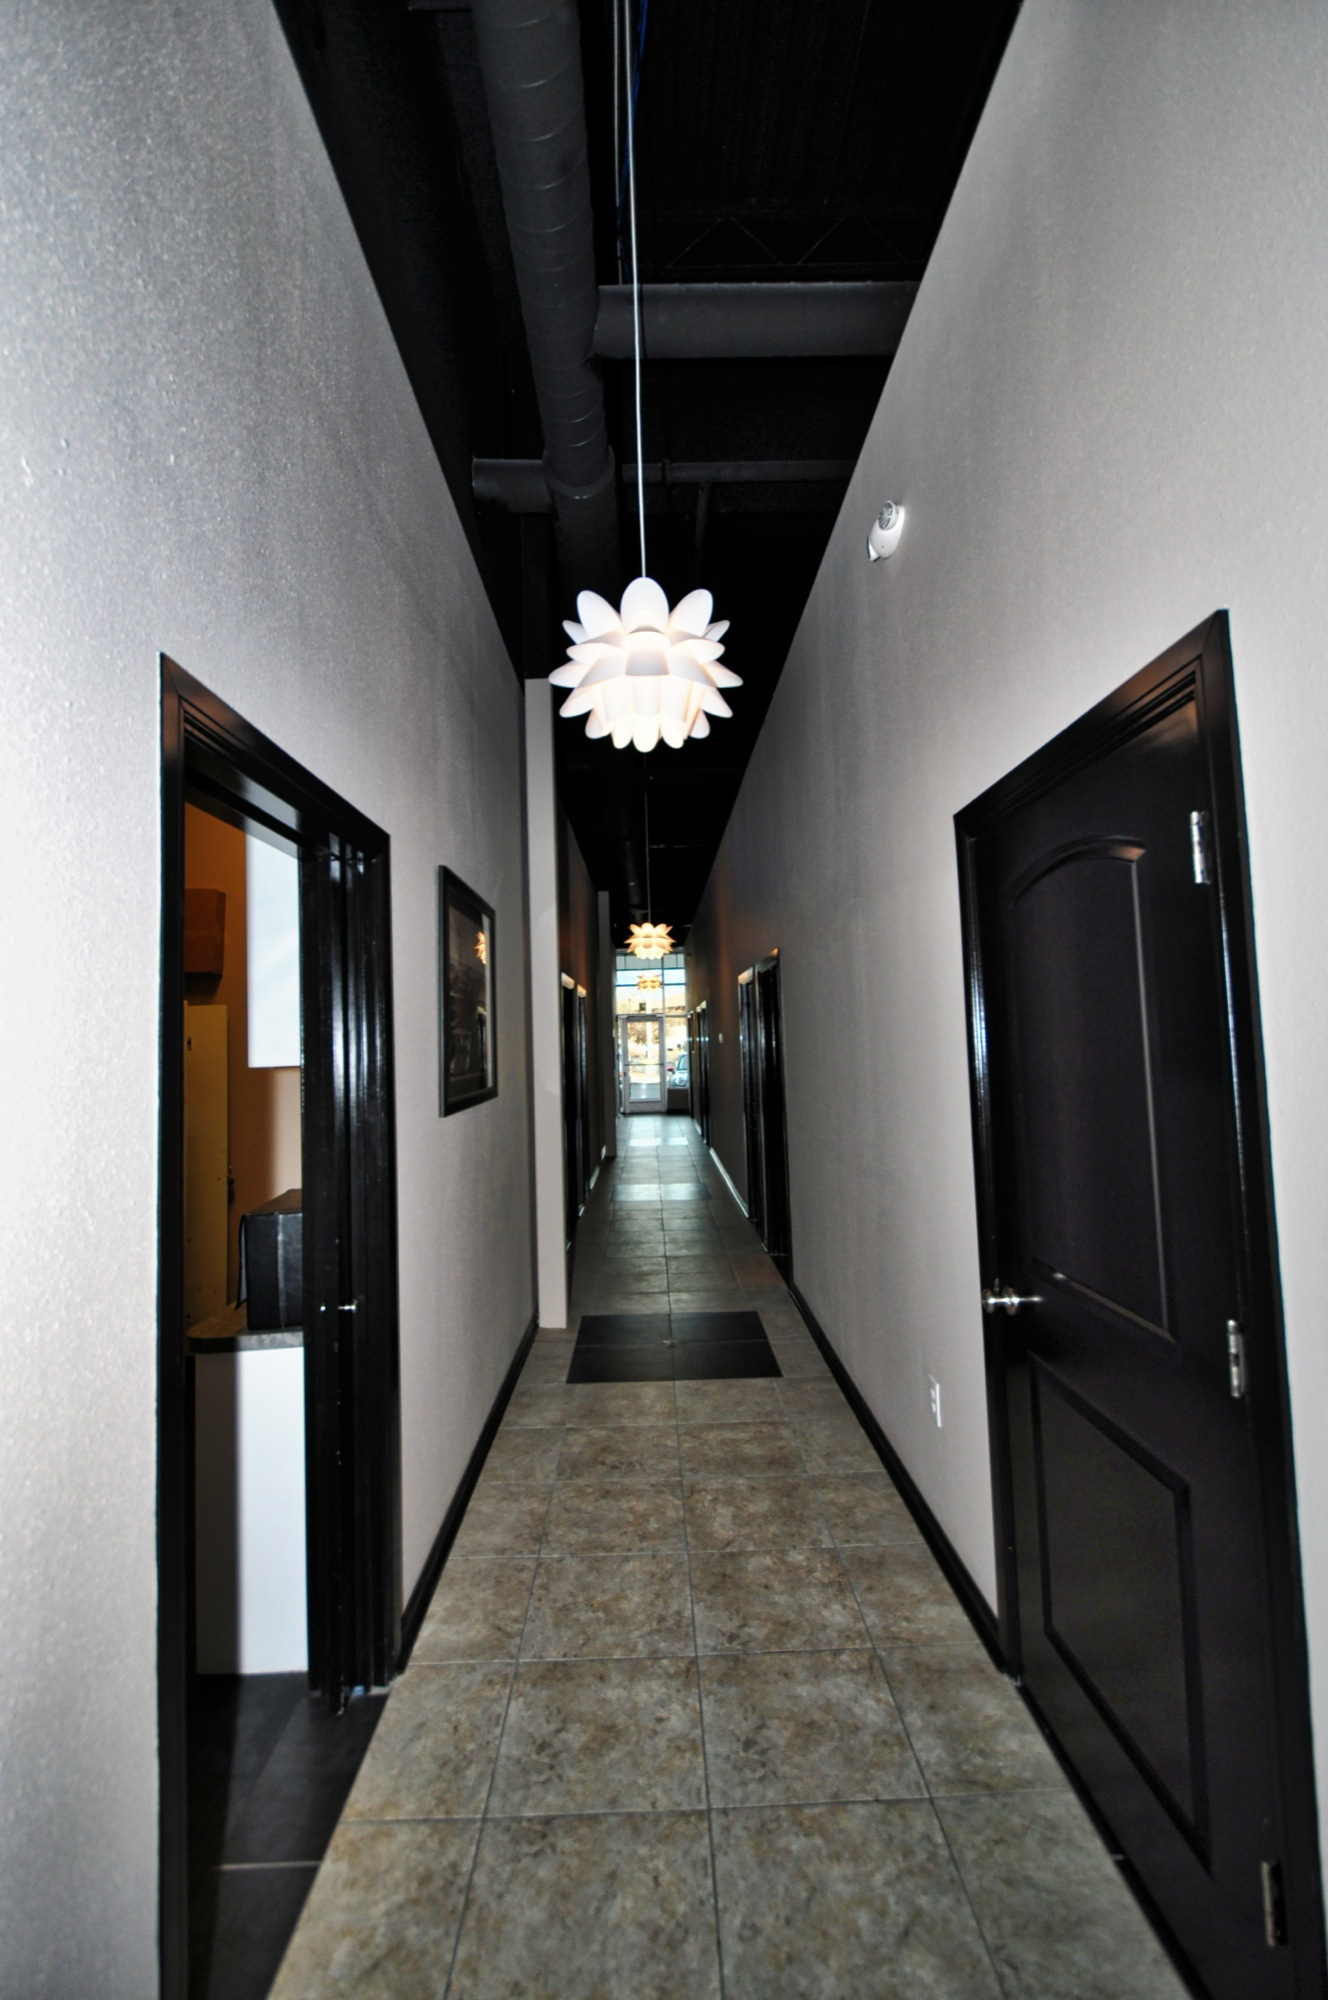 Lorenco's Interior - Hallway to Treatment Rooms